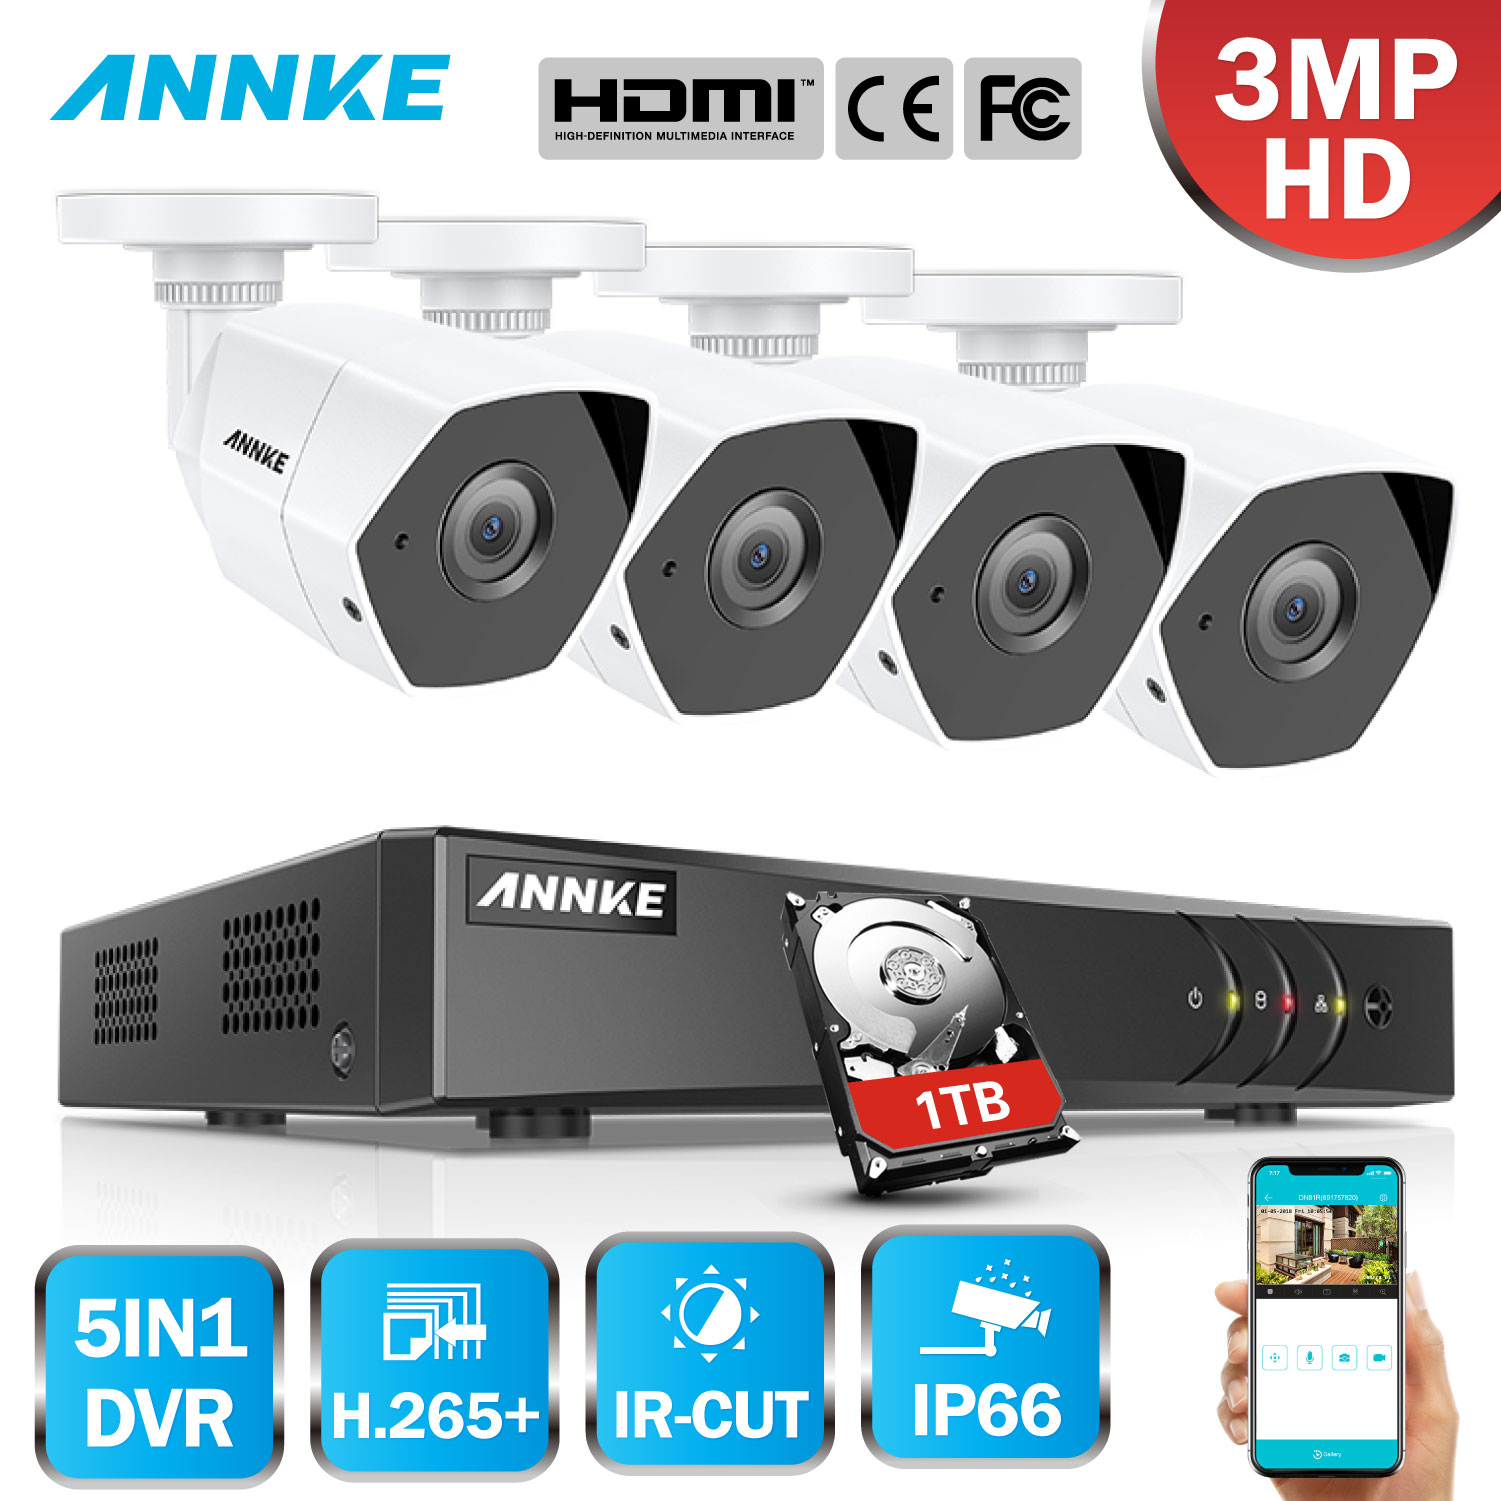 ANNKE Full HD 8CH 3MP 5in1 Security DVR System CCTV Kit 4pcs Weatherproof Outdoor Surveillance Bullet